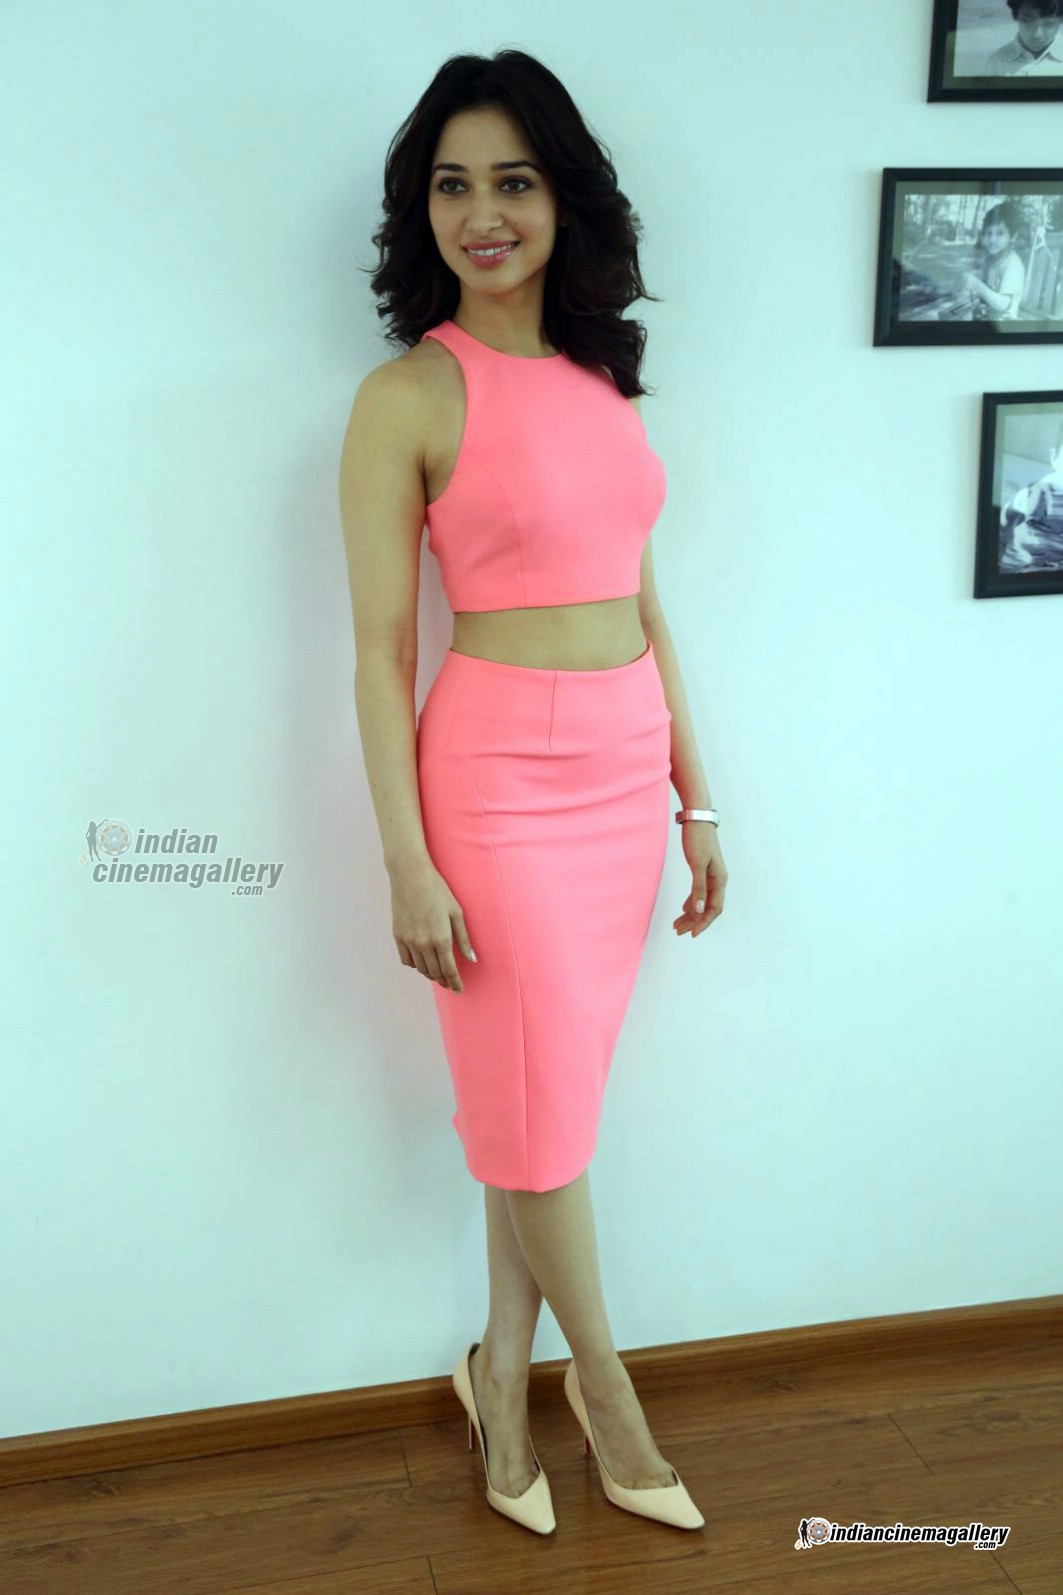 tamanna-bhatia-in-pink-dress-march-2016-pics-64532